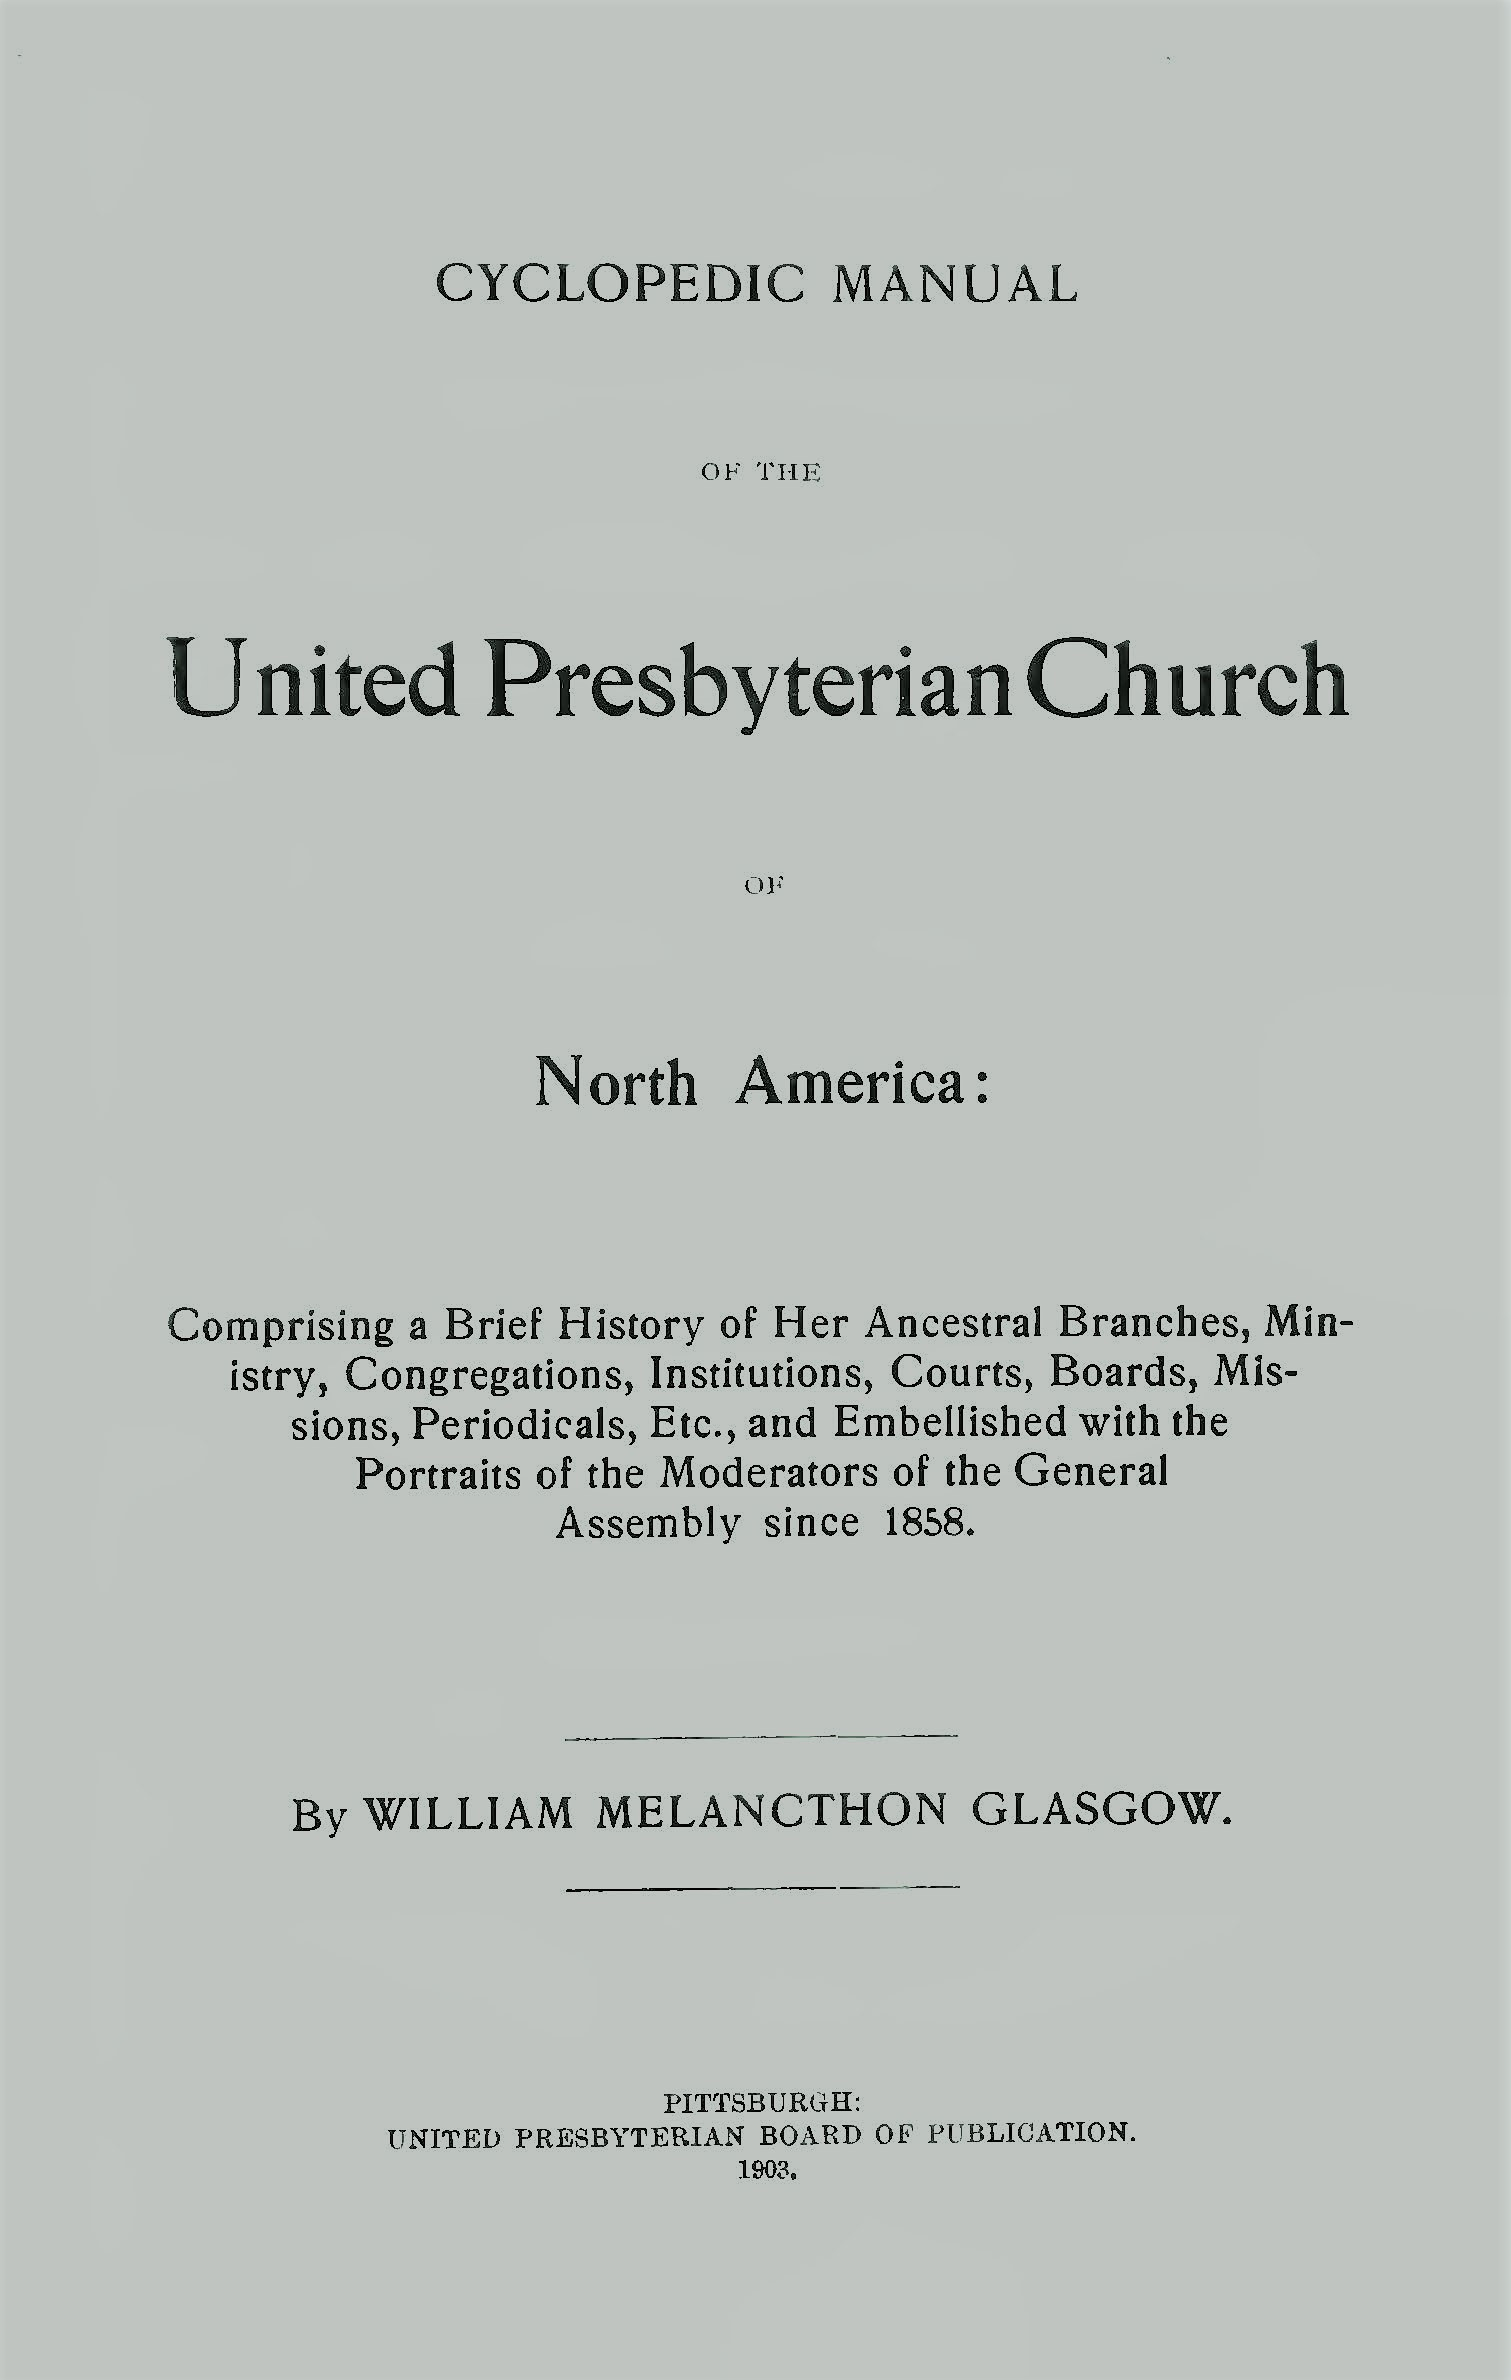 Glasgow, William Melancthon, Cyclopedic Manual of the United Presbyterian Church of North America Title Page.jpg